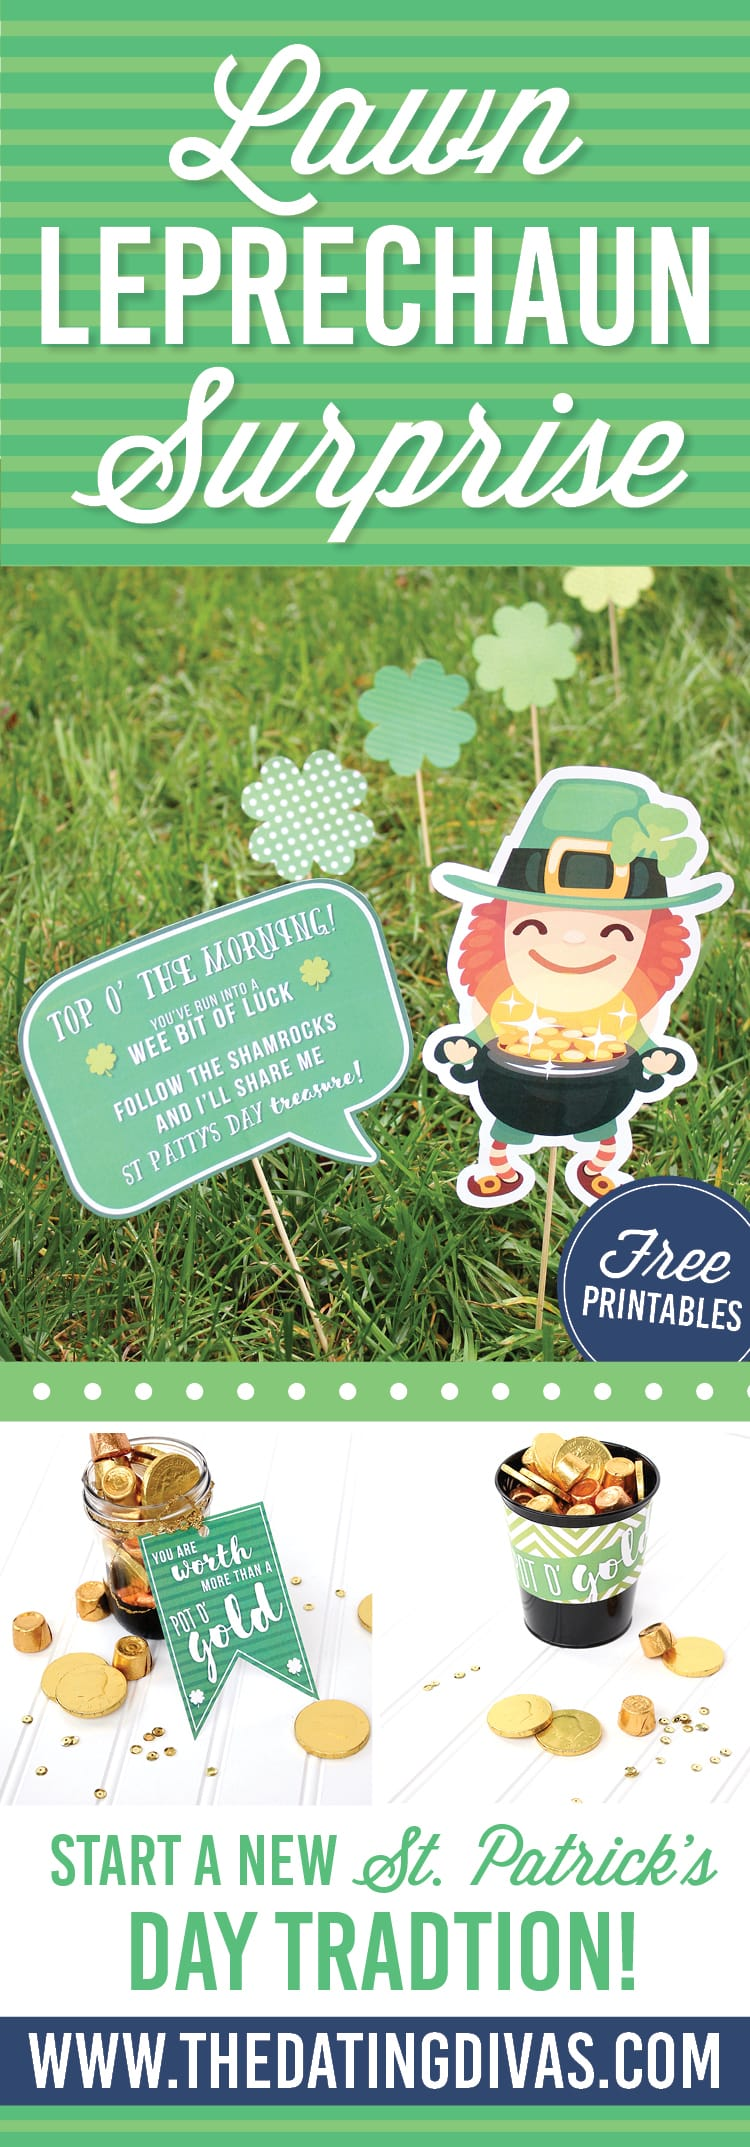 Lawn Leprechaun Surprise Ideas